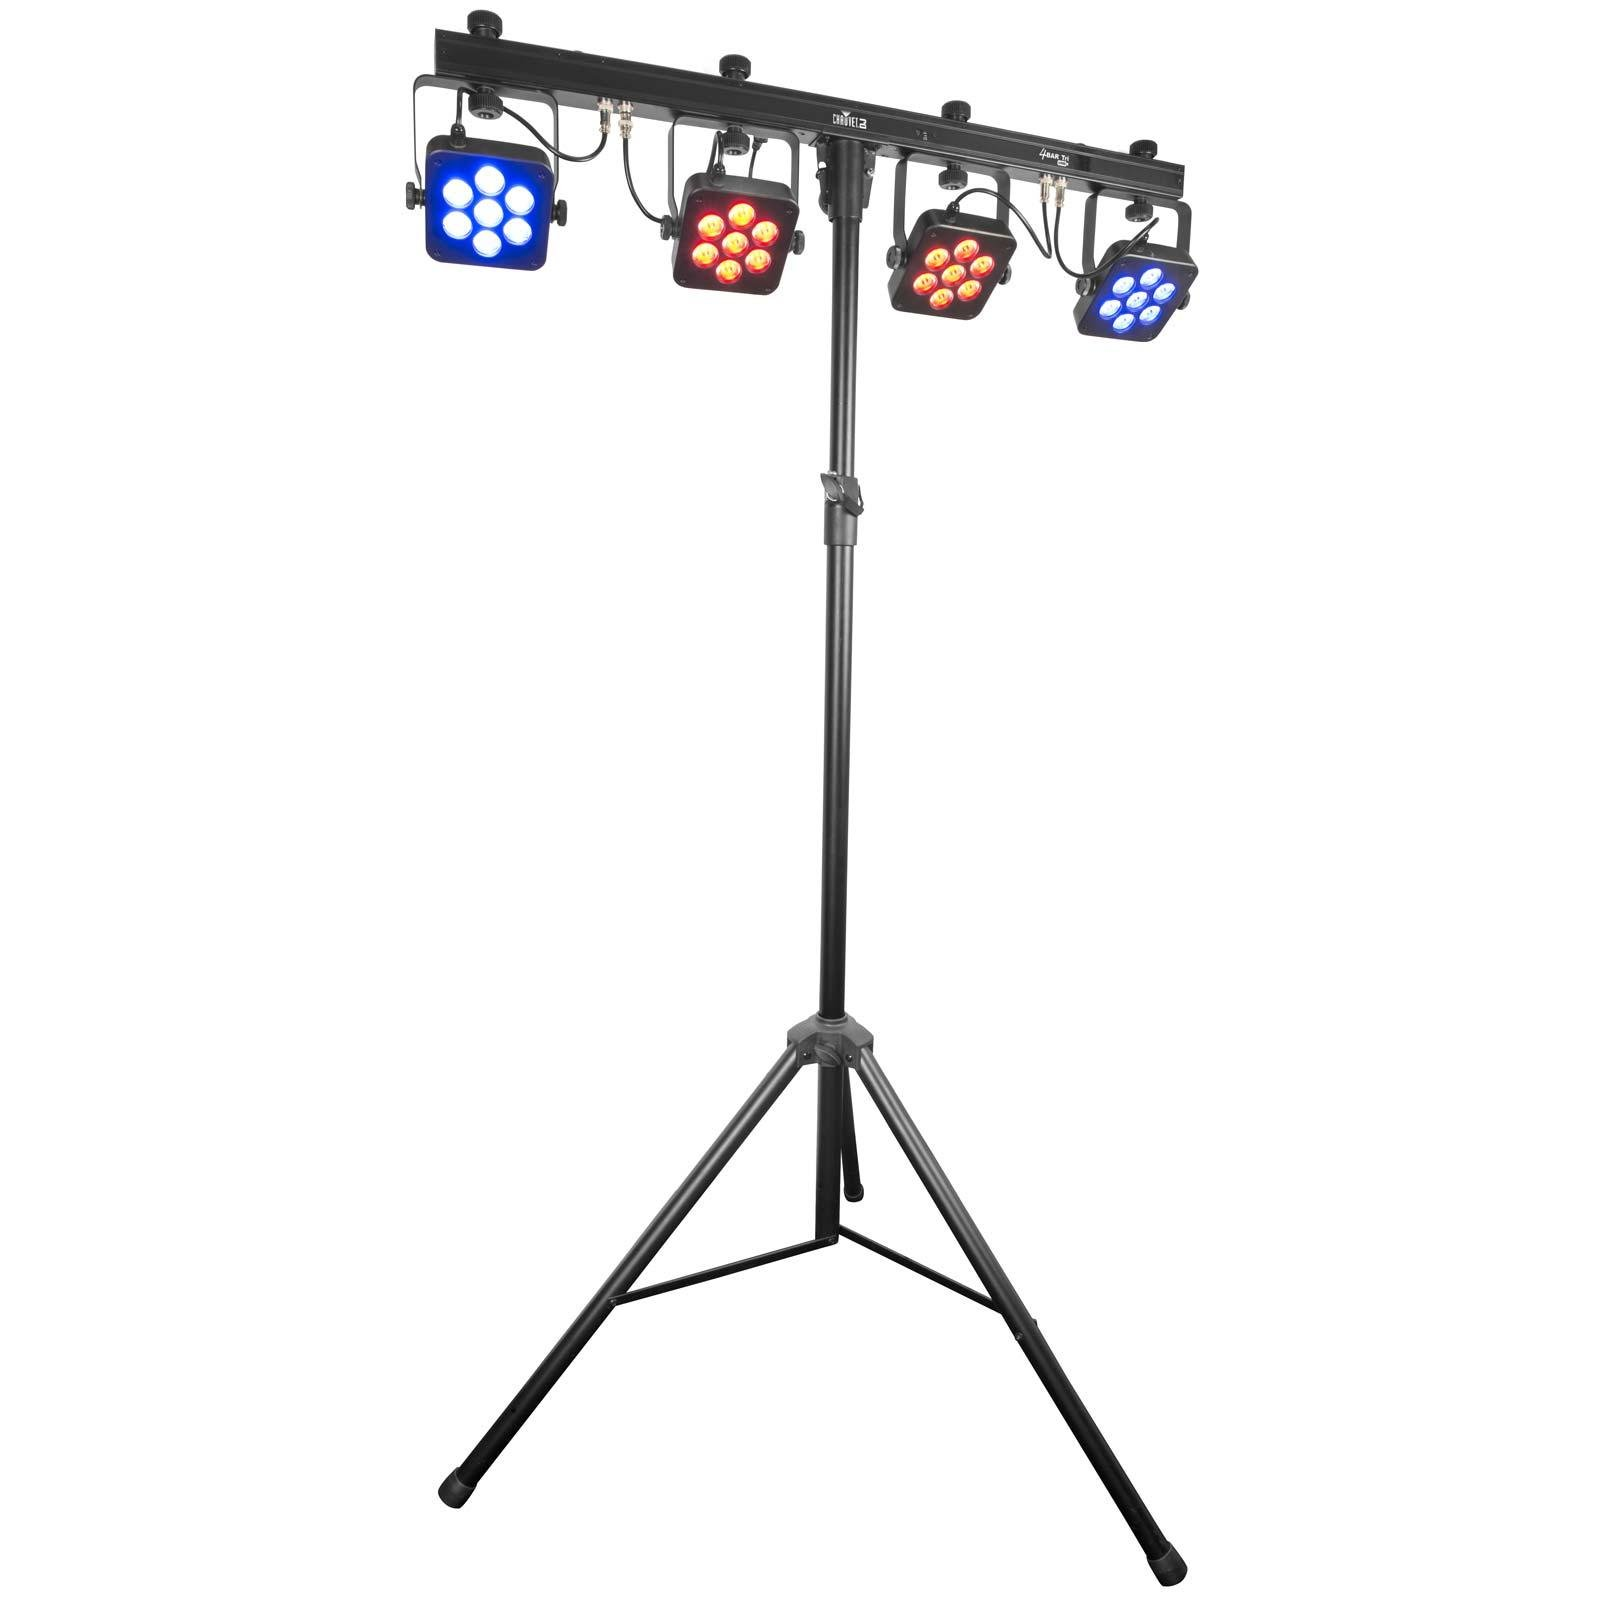 Chauvet 4BAR Tri USB Wash Lighting System